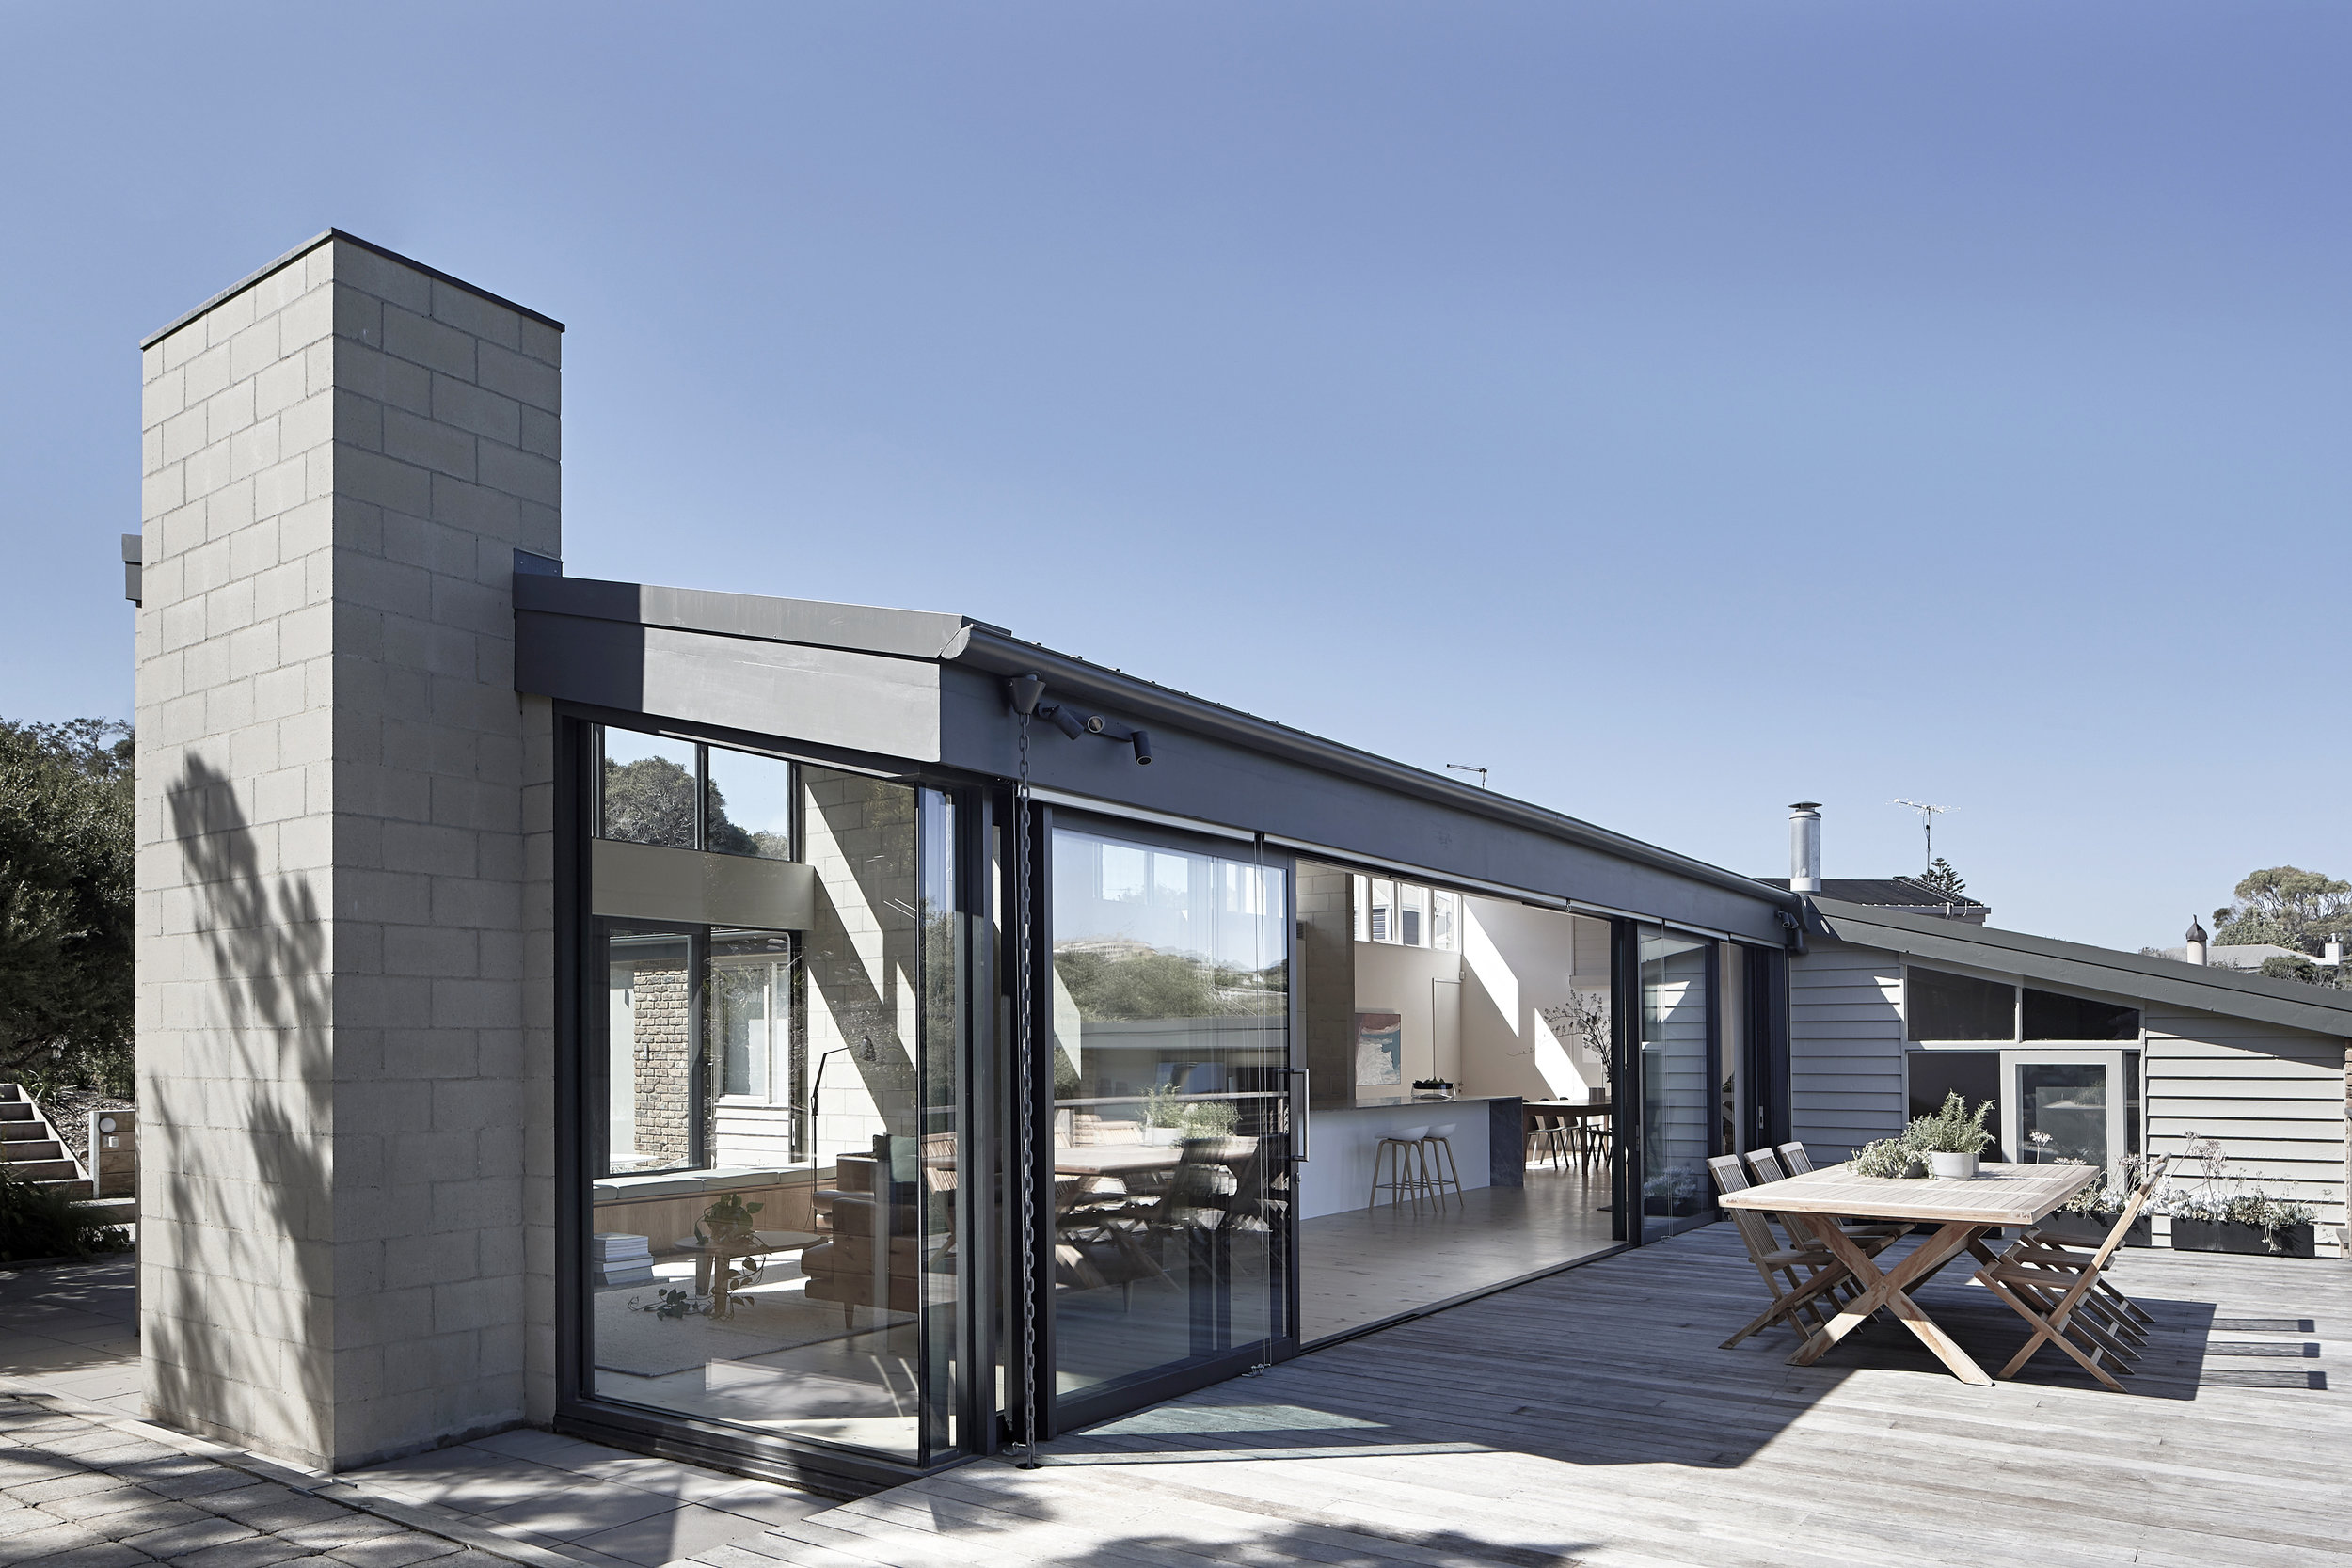 Portsea Back Beach House_©smg_0211.jpg